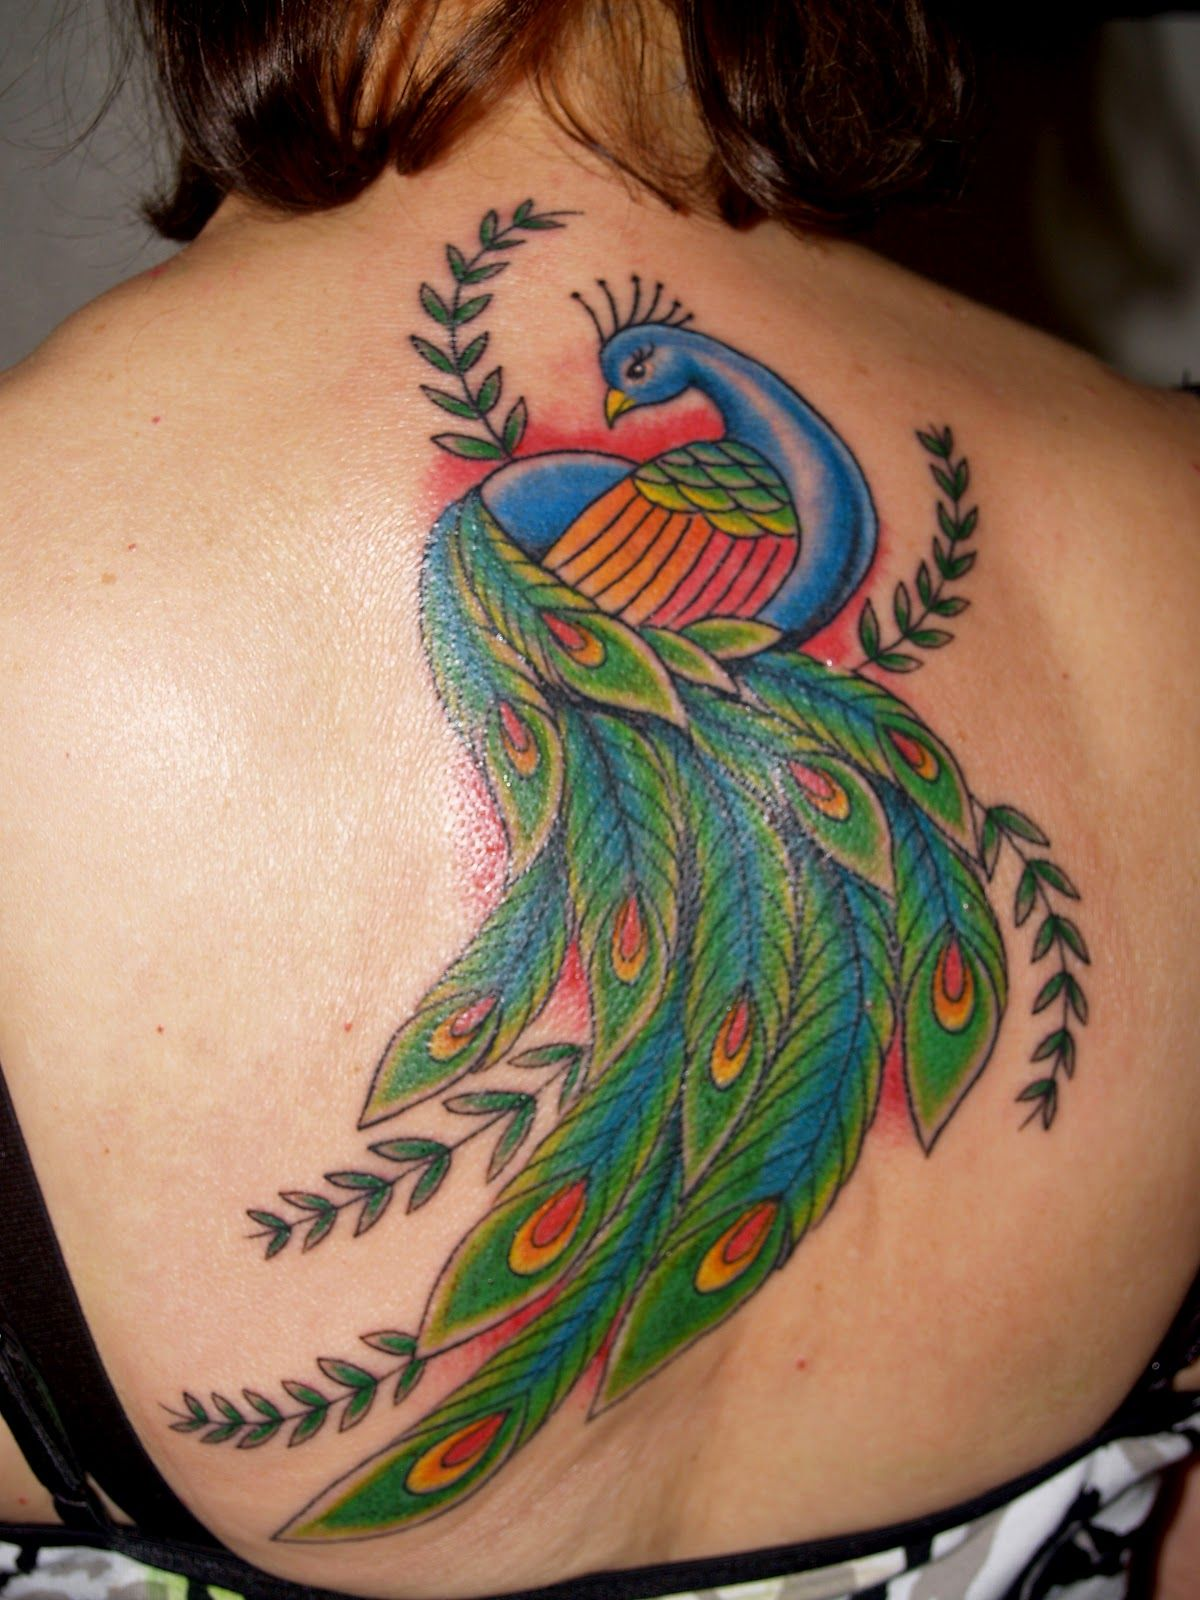 Peacock flower tattoo designs - Peacock Feather Tattoos Designs Yahoo Search Results